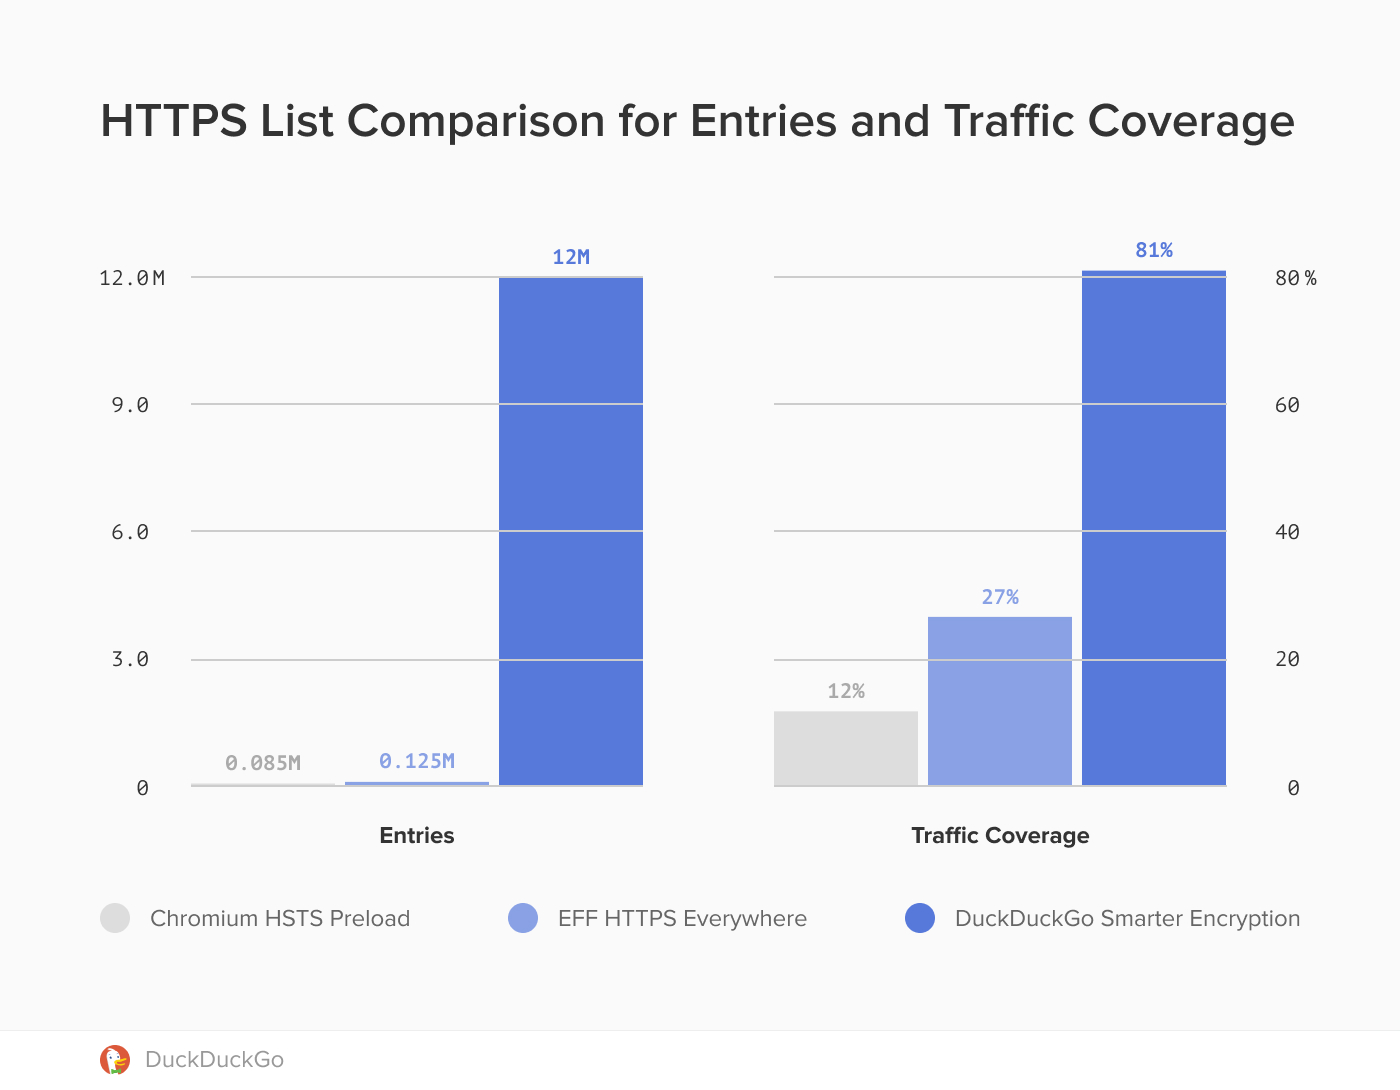 Chart showing a comparison of HTTPS list coverage.